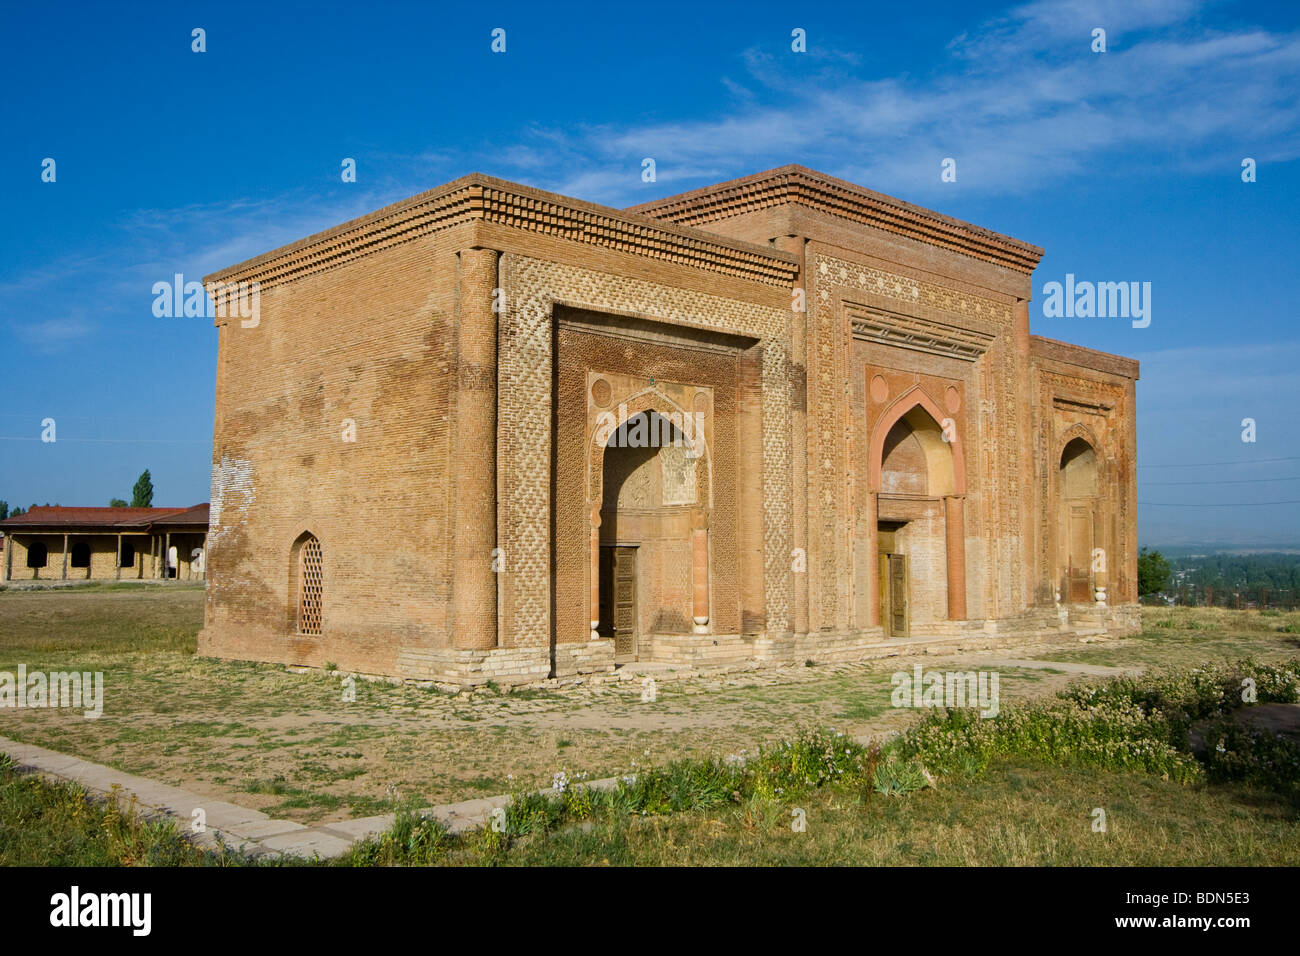 12th Century Karakhanid Mausoleums of Ozgon (Uzgen) Kyrgyzstan - Stock Image